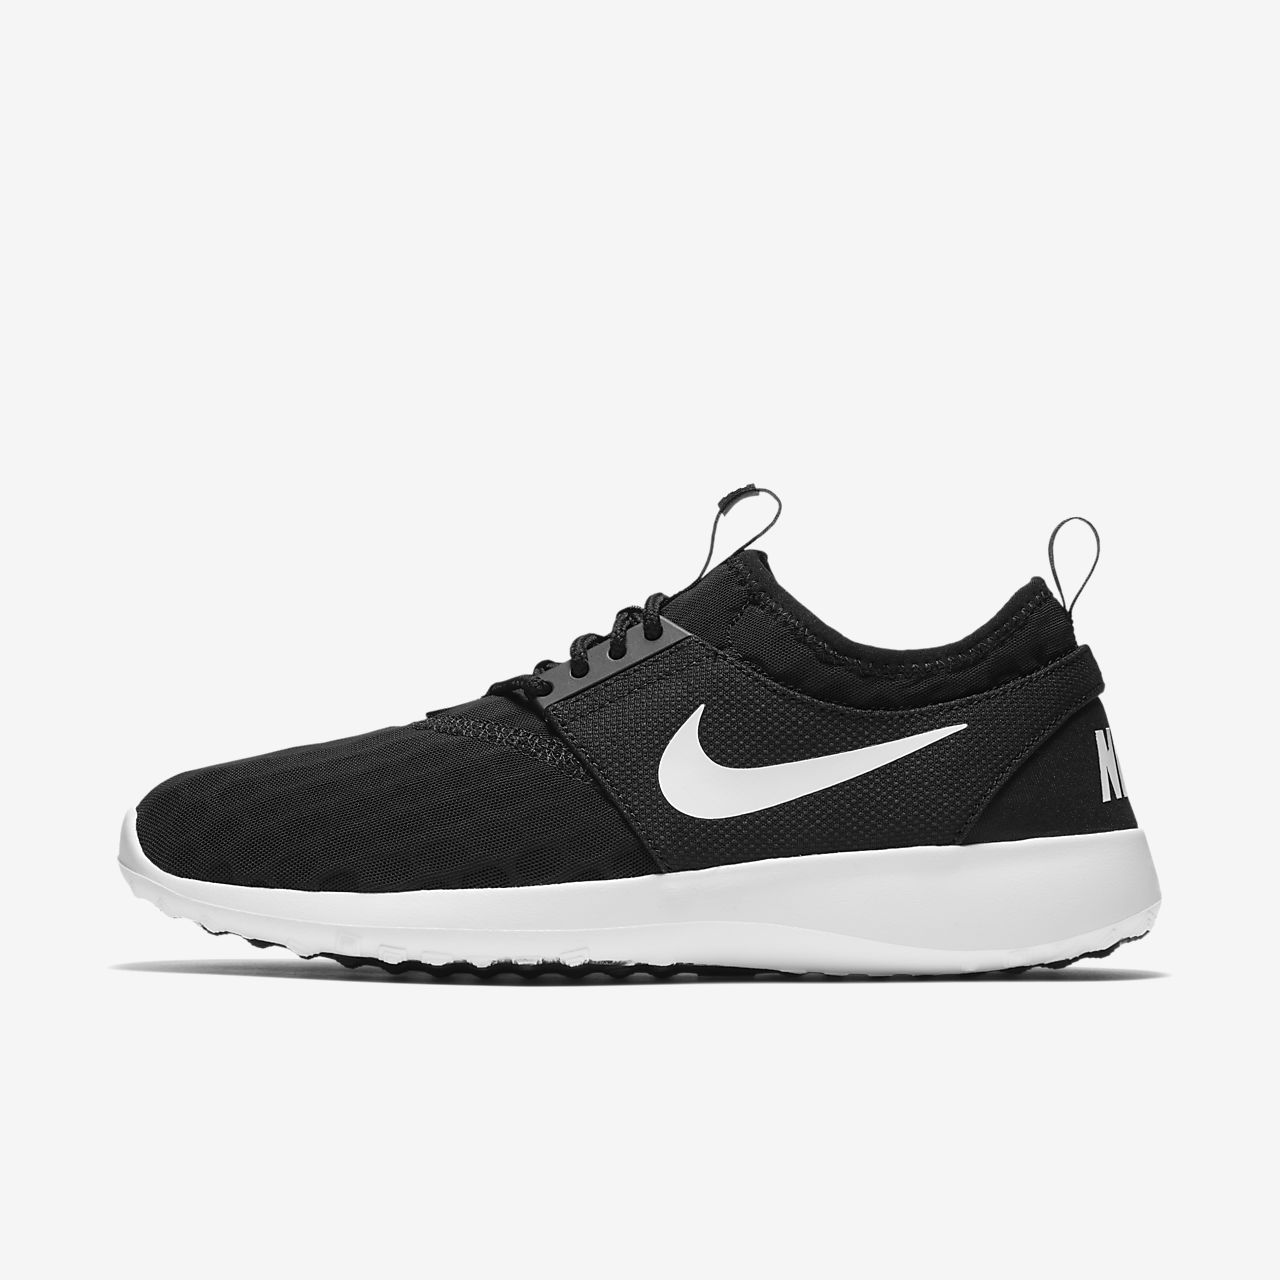 a4dadb2d1070 Low Resolution Nike Juvenate Women s Shoe Nike Juvenate Women s Shoe